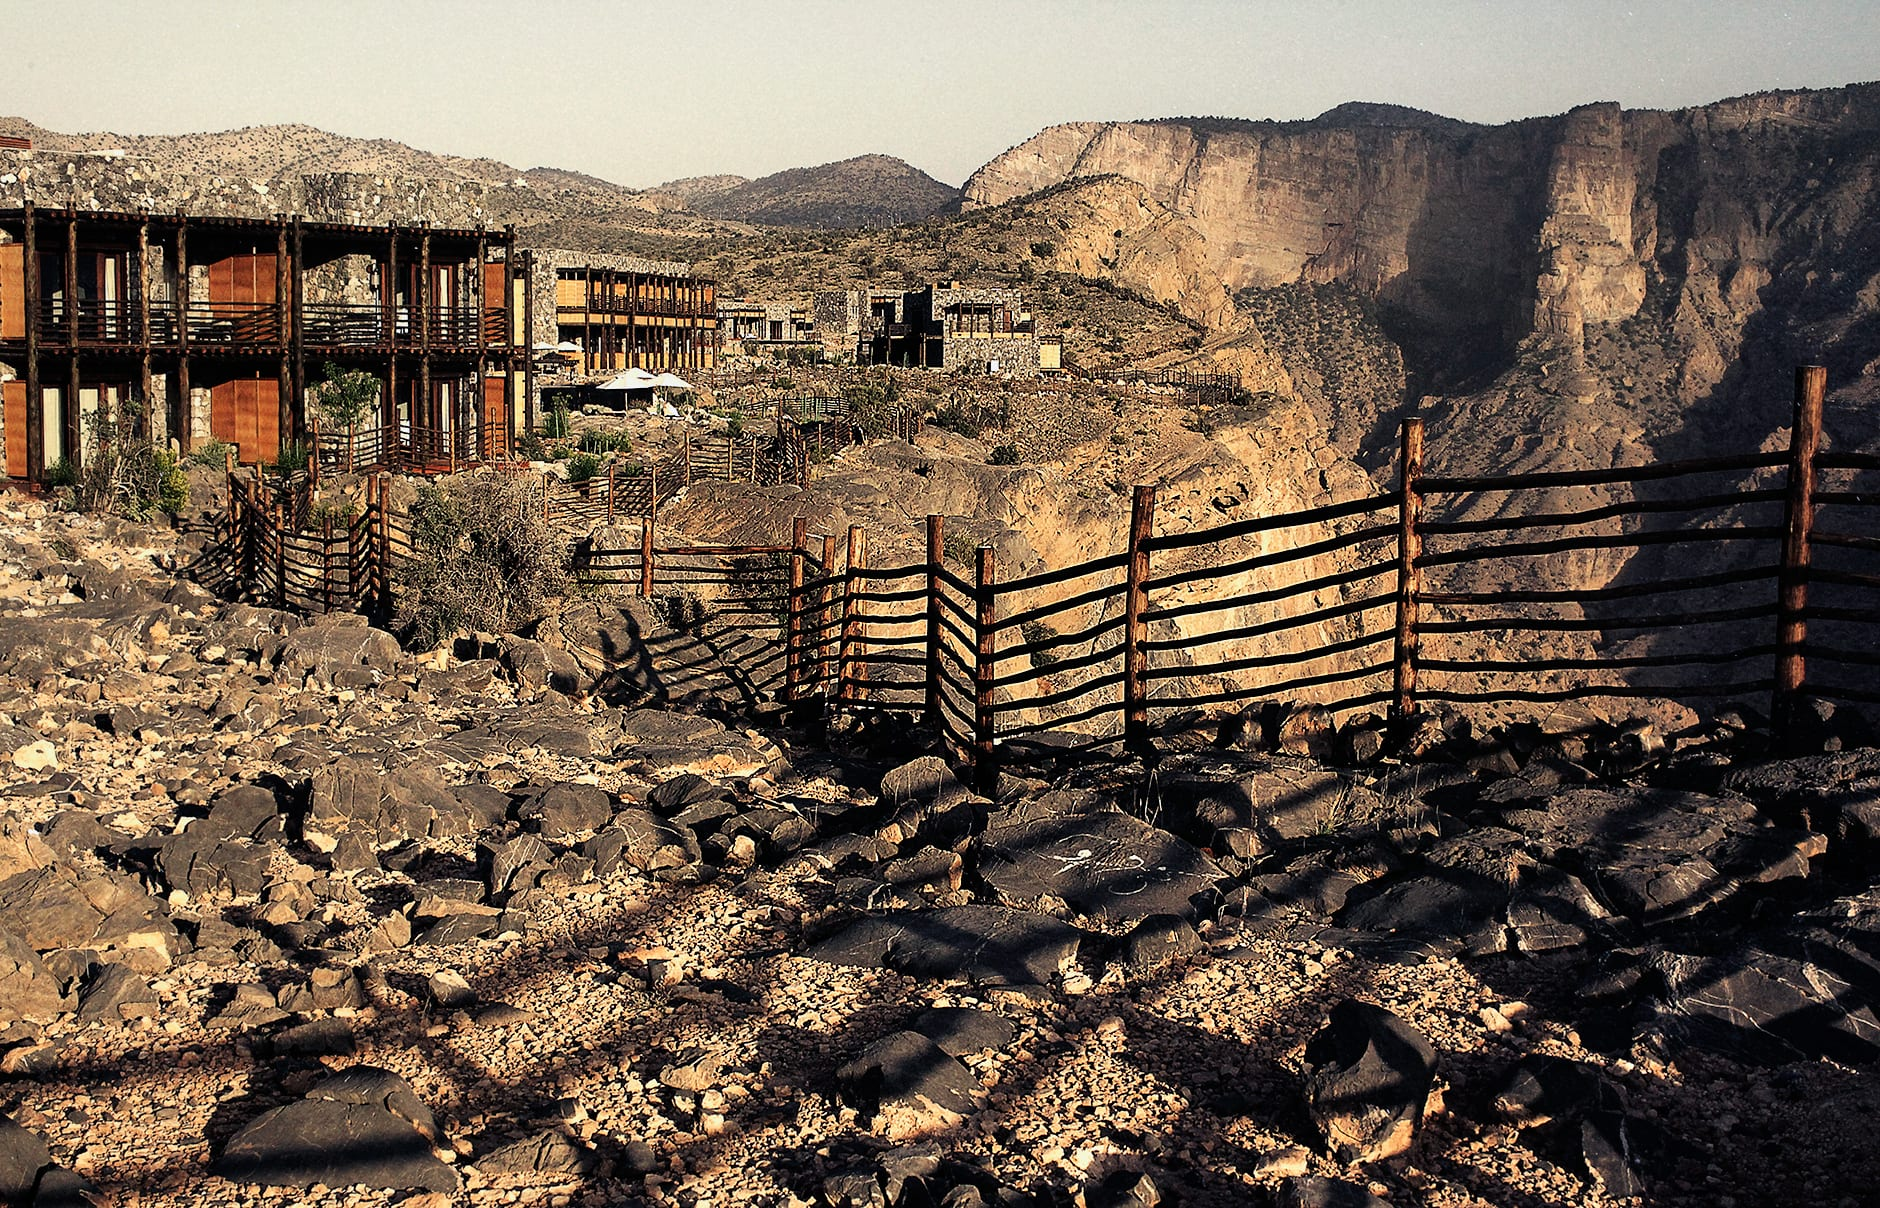 Exterior. Alila Jabal Akhdar, Nizwa, Oman. © Alila Hotels and Resorts